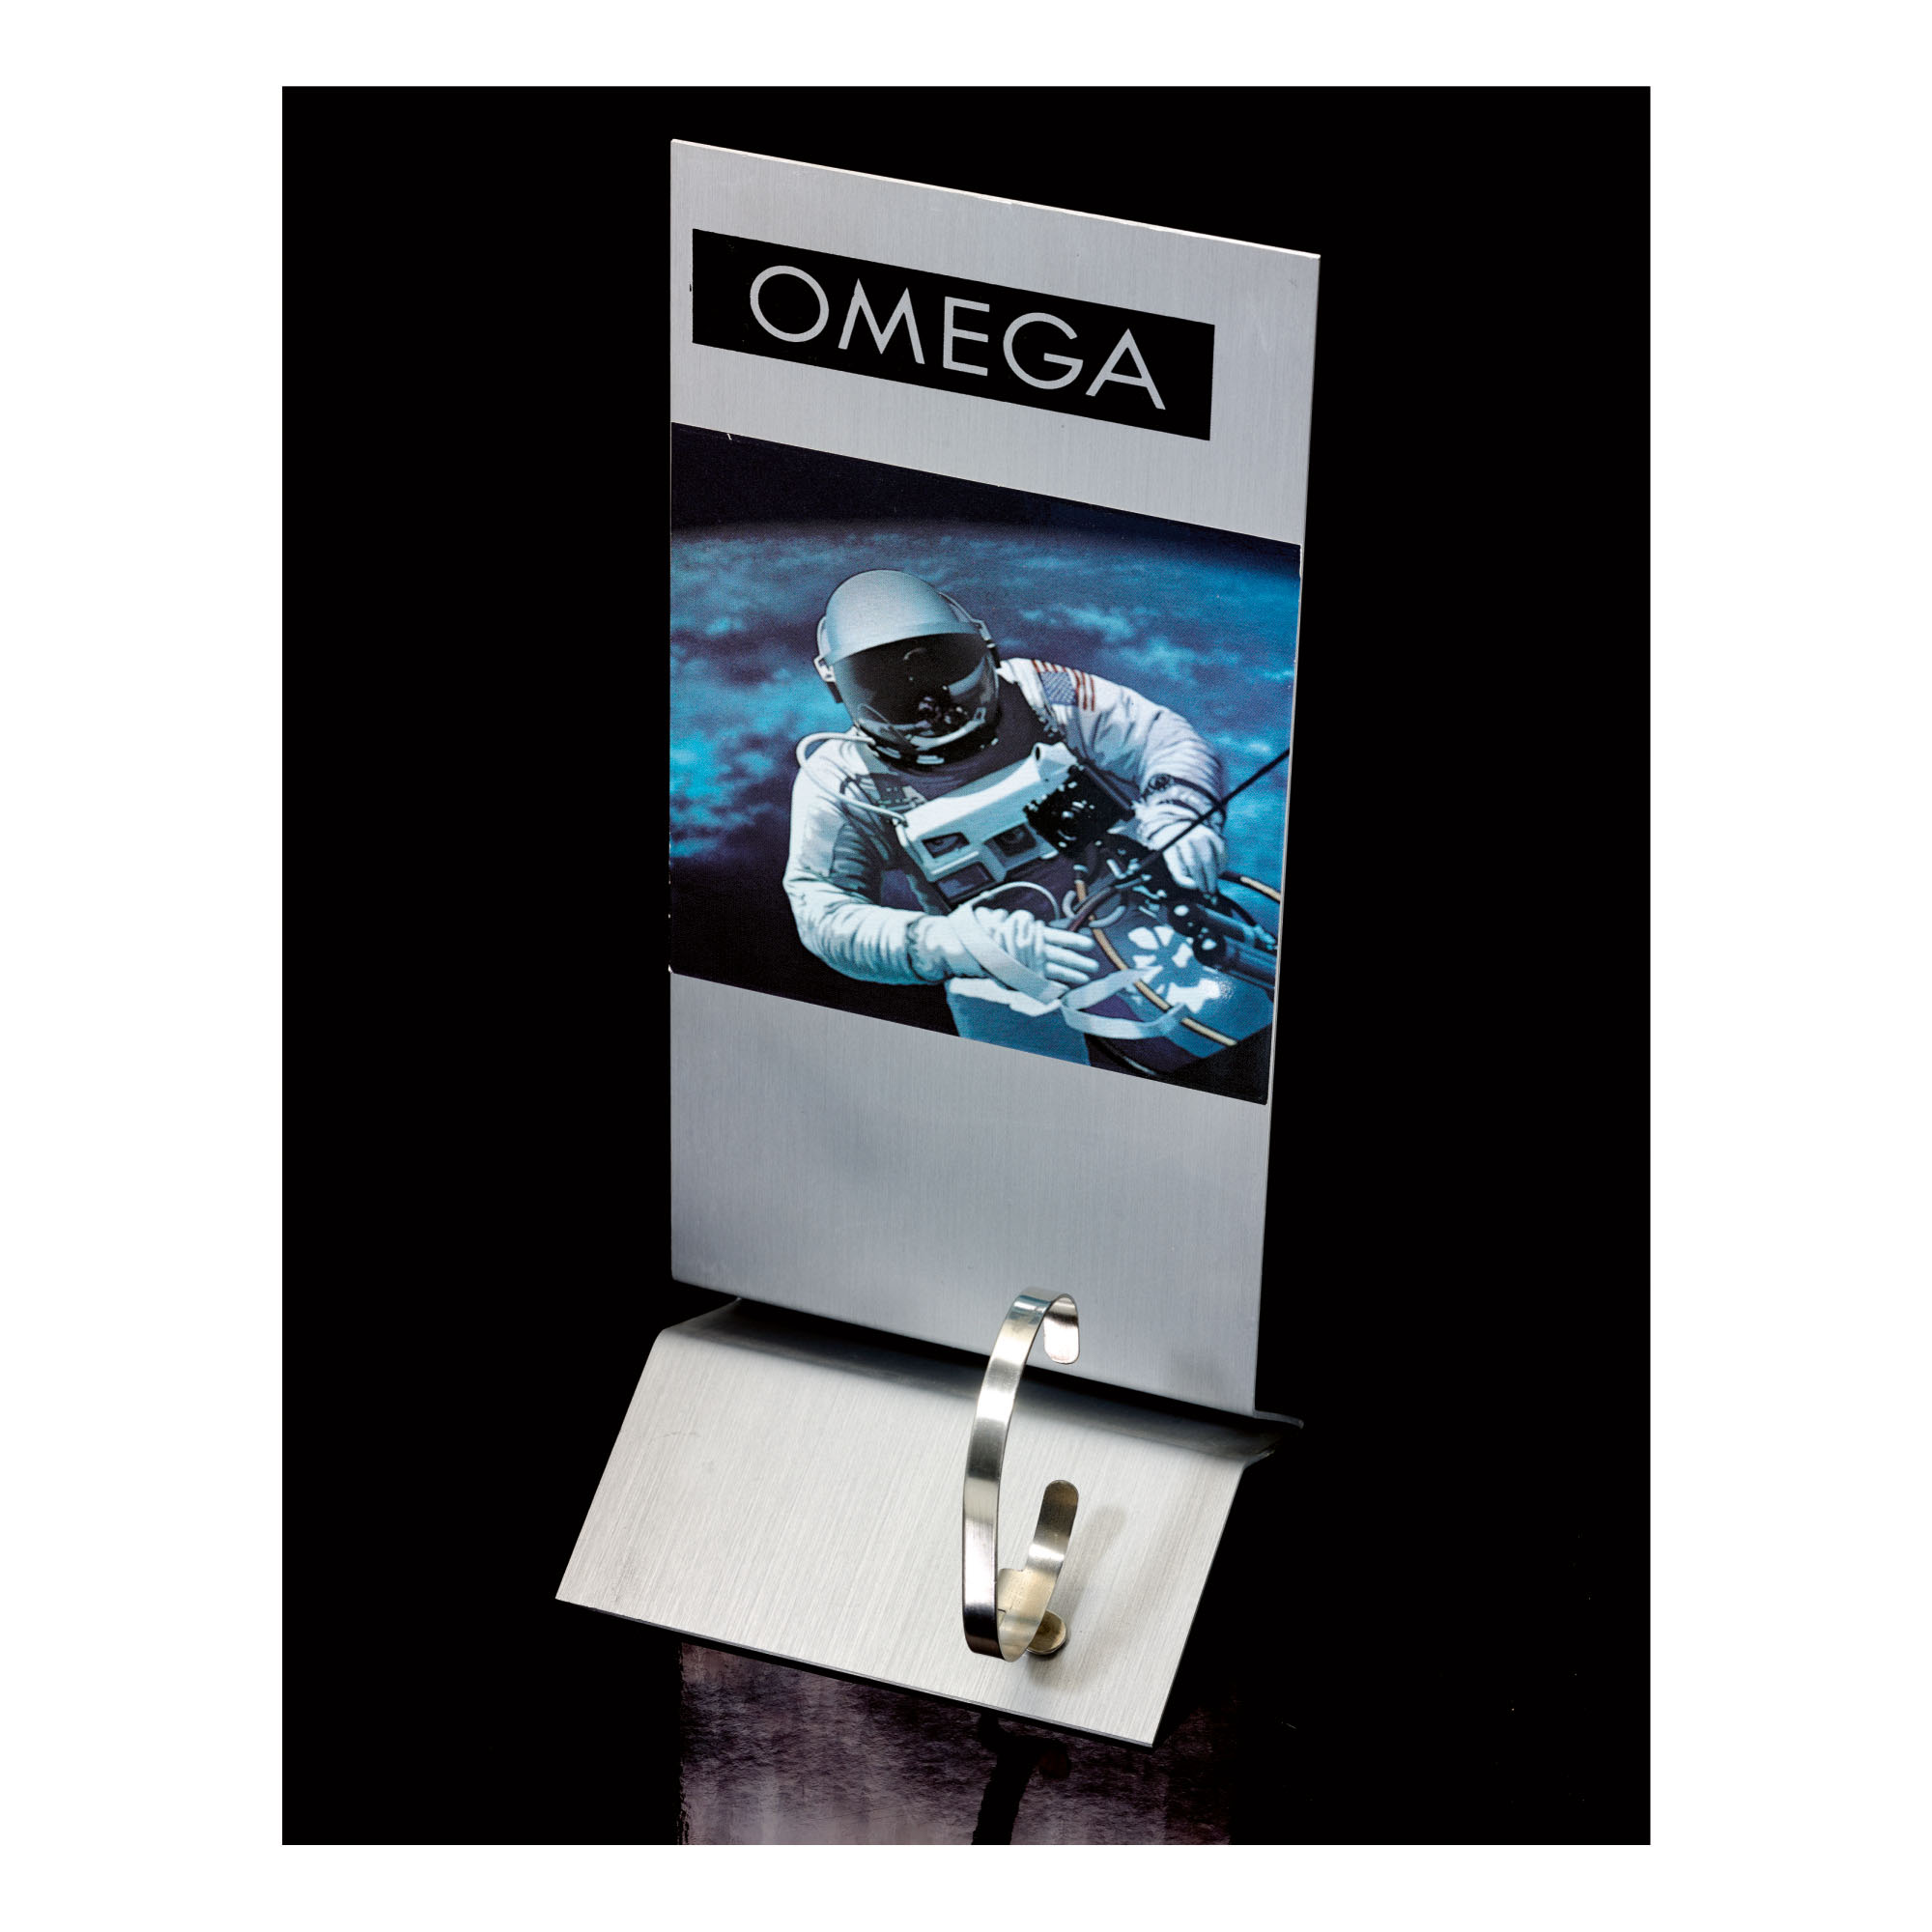 OMEGA | A STAINLESS STEEL OMEGA ADJUSTABLE WATCH STAND DEPICTING AN ASTRONAUT, CIRCA 1995